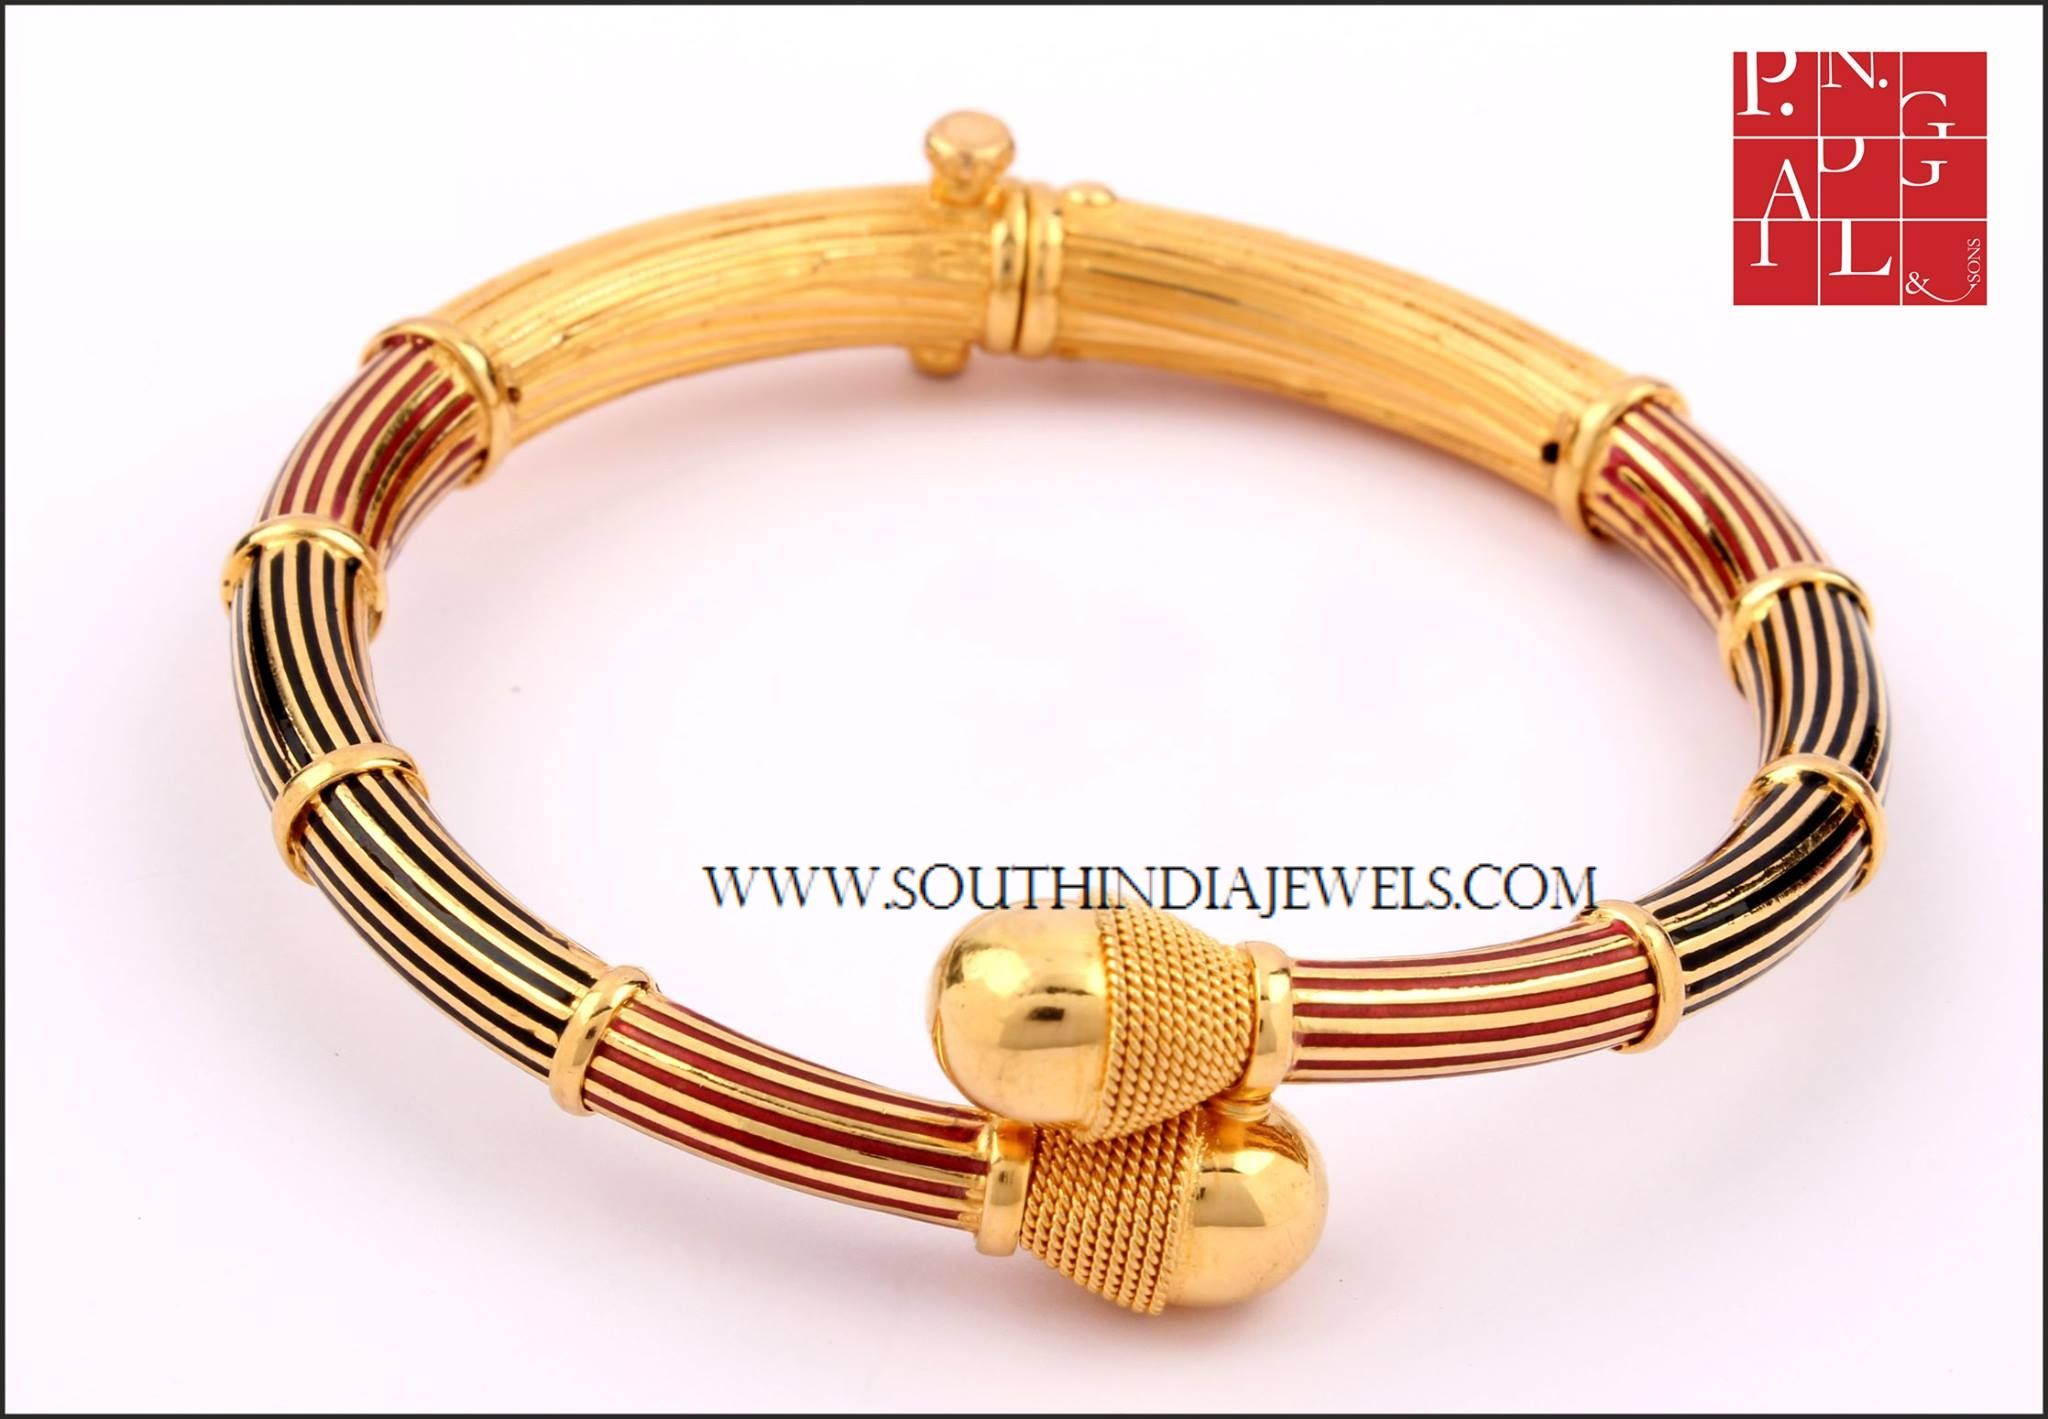 30 Grams Gold Bracelet From PN Gadgil & Sons | Bracelet designs ...